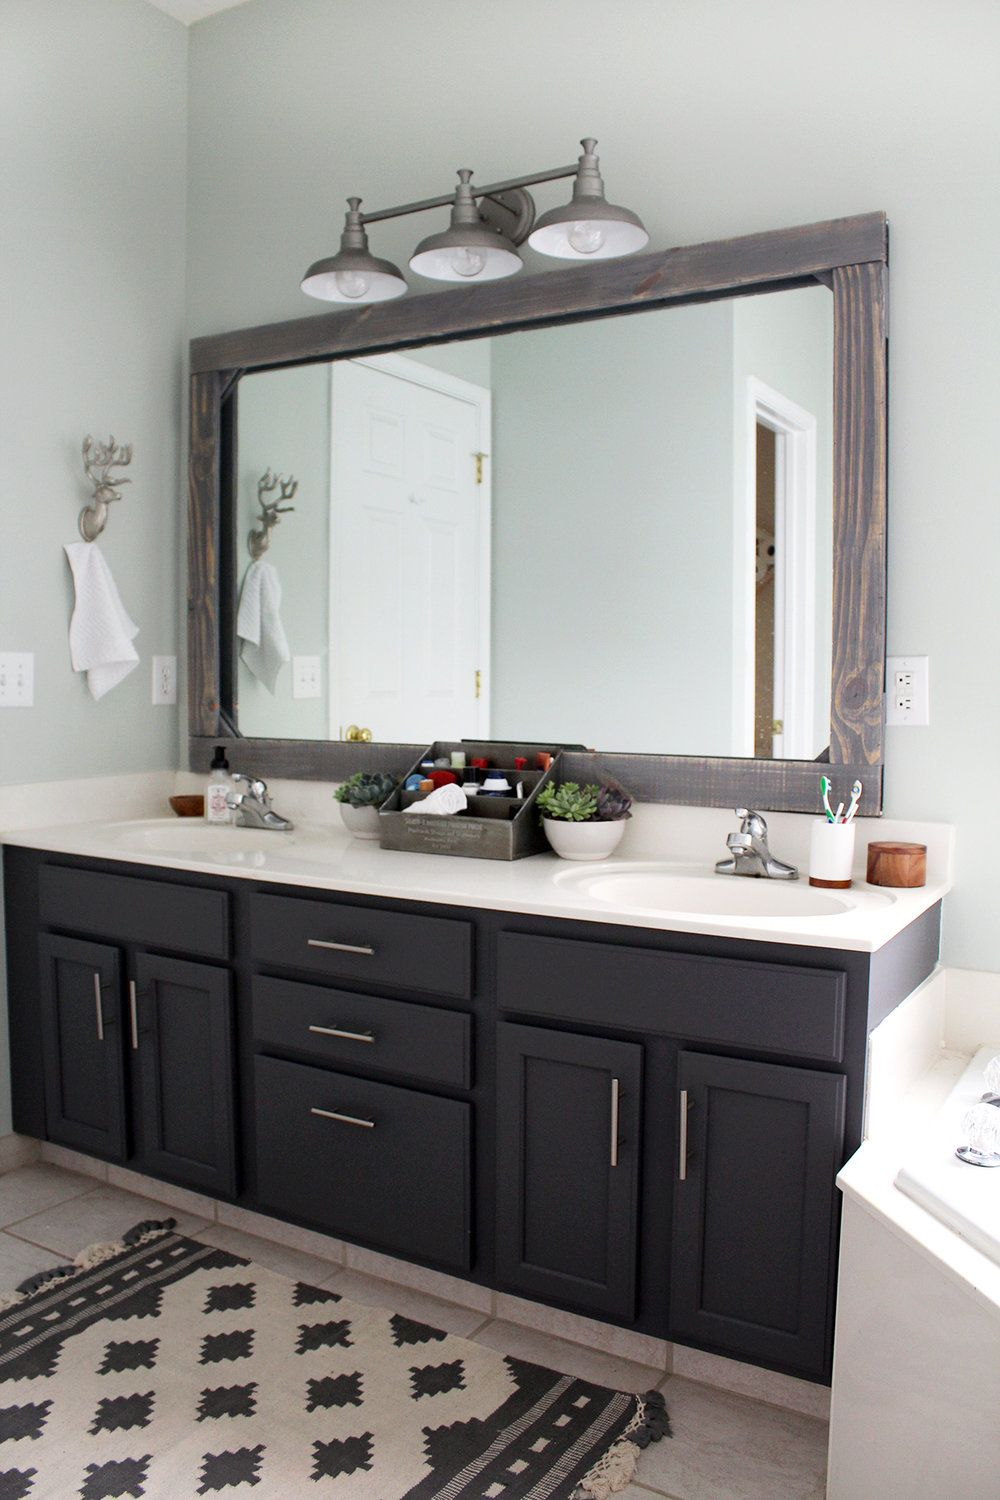 Master Bathroom Update On A 300 Budget Tag Tibby Design Bathroom Mirror Design Bathroom Remodel Master Master Bathroom Update